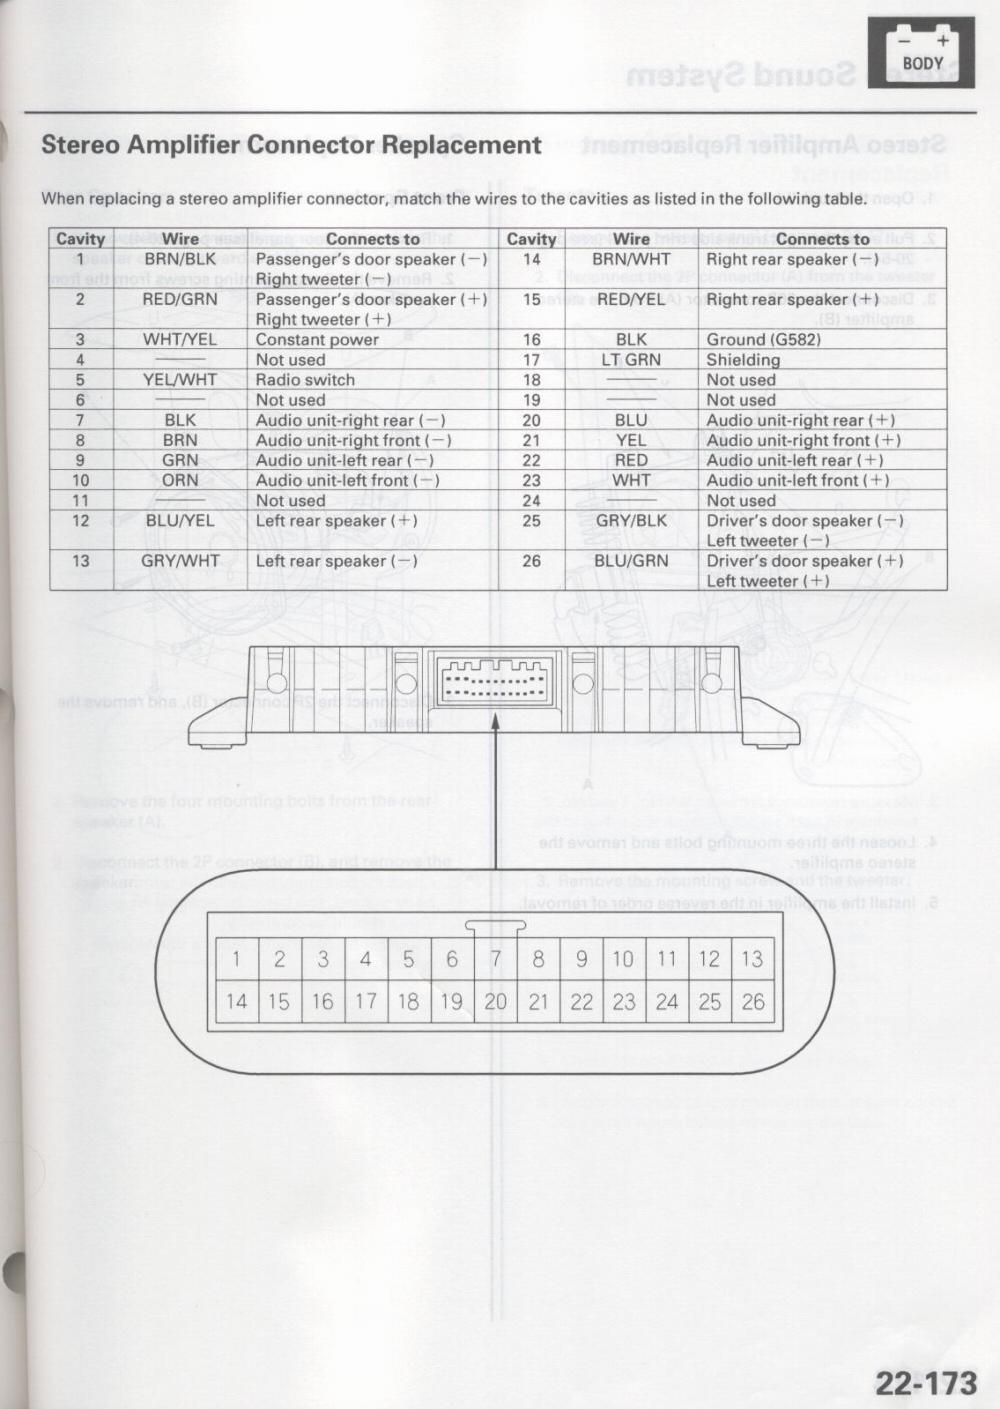 Acura 2002 TL car stereo amplifier wiring diagram harness car radio stereo audio wiring diagram autoradio connector wire 2012 chrysler 200 speaker wiring diagram at metegol.co